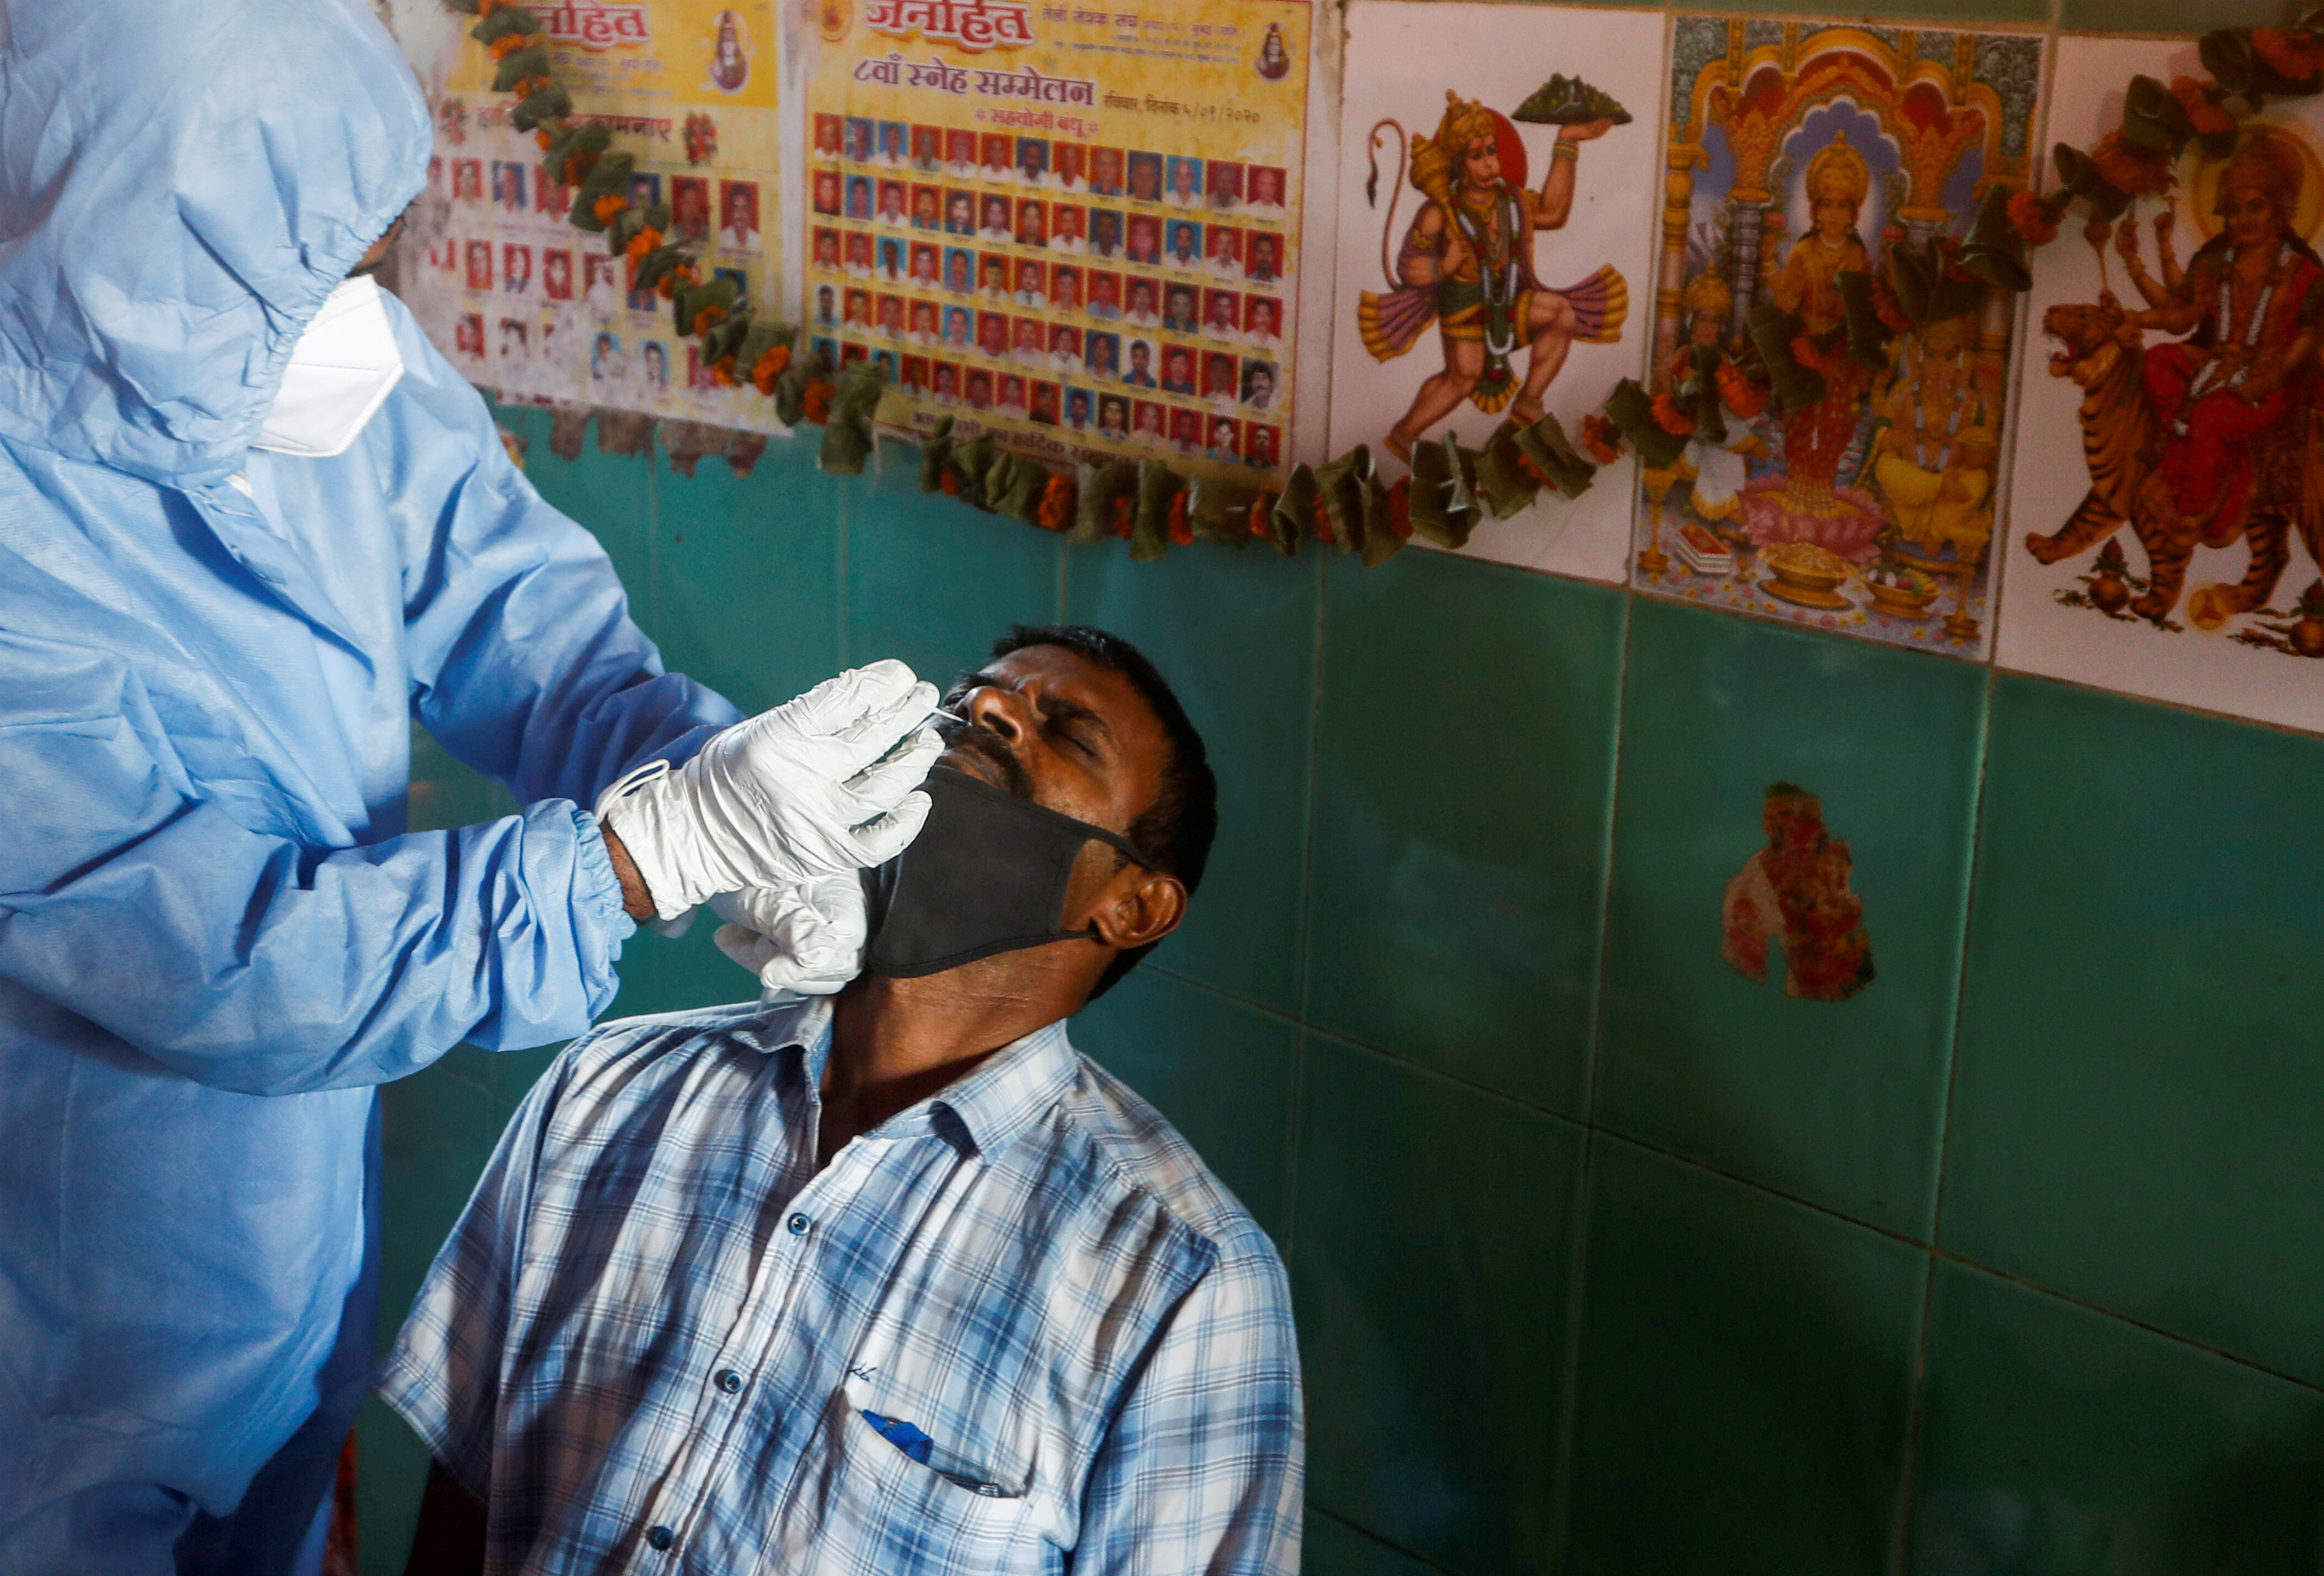 A health worker in personal protective equipment (PPE) collects a swab sample from a man during a rapid antigen testing campaign for the coronavirus disease (COVID-19), at a vegetable market in Mumbai, India, November 21, 2020. REUTERS/Francis Mascarenhas